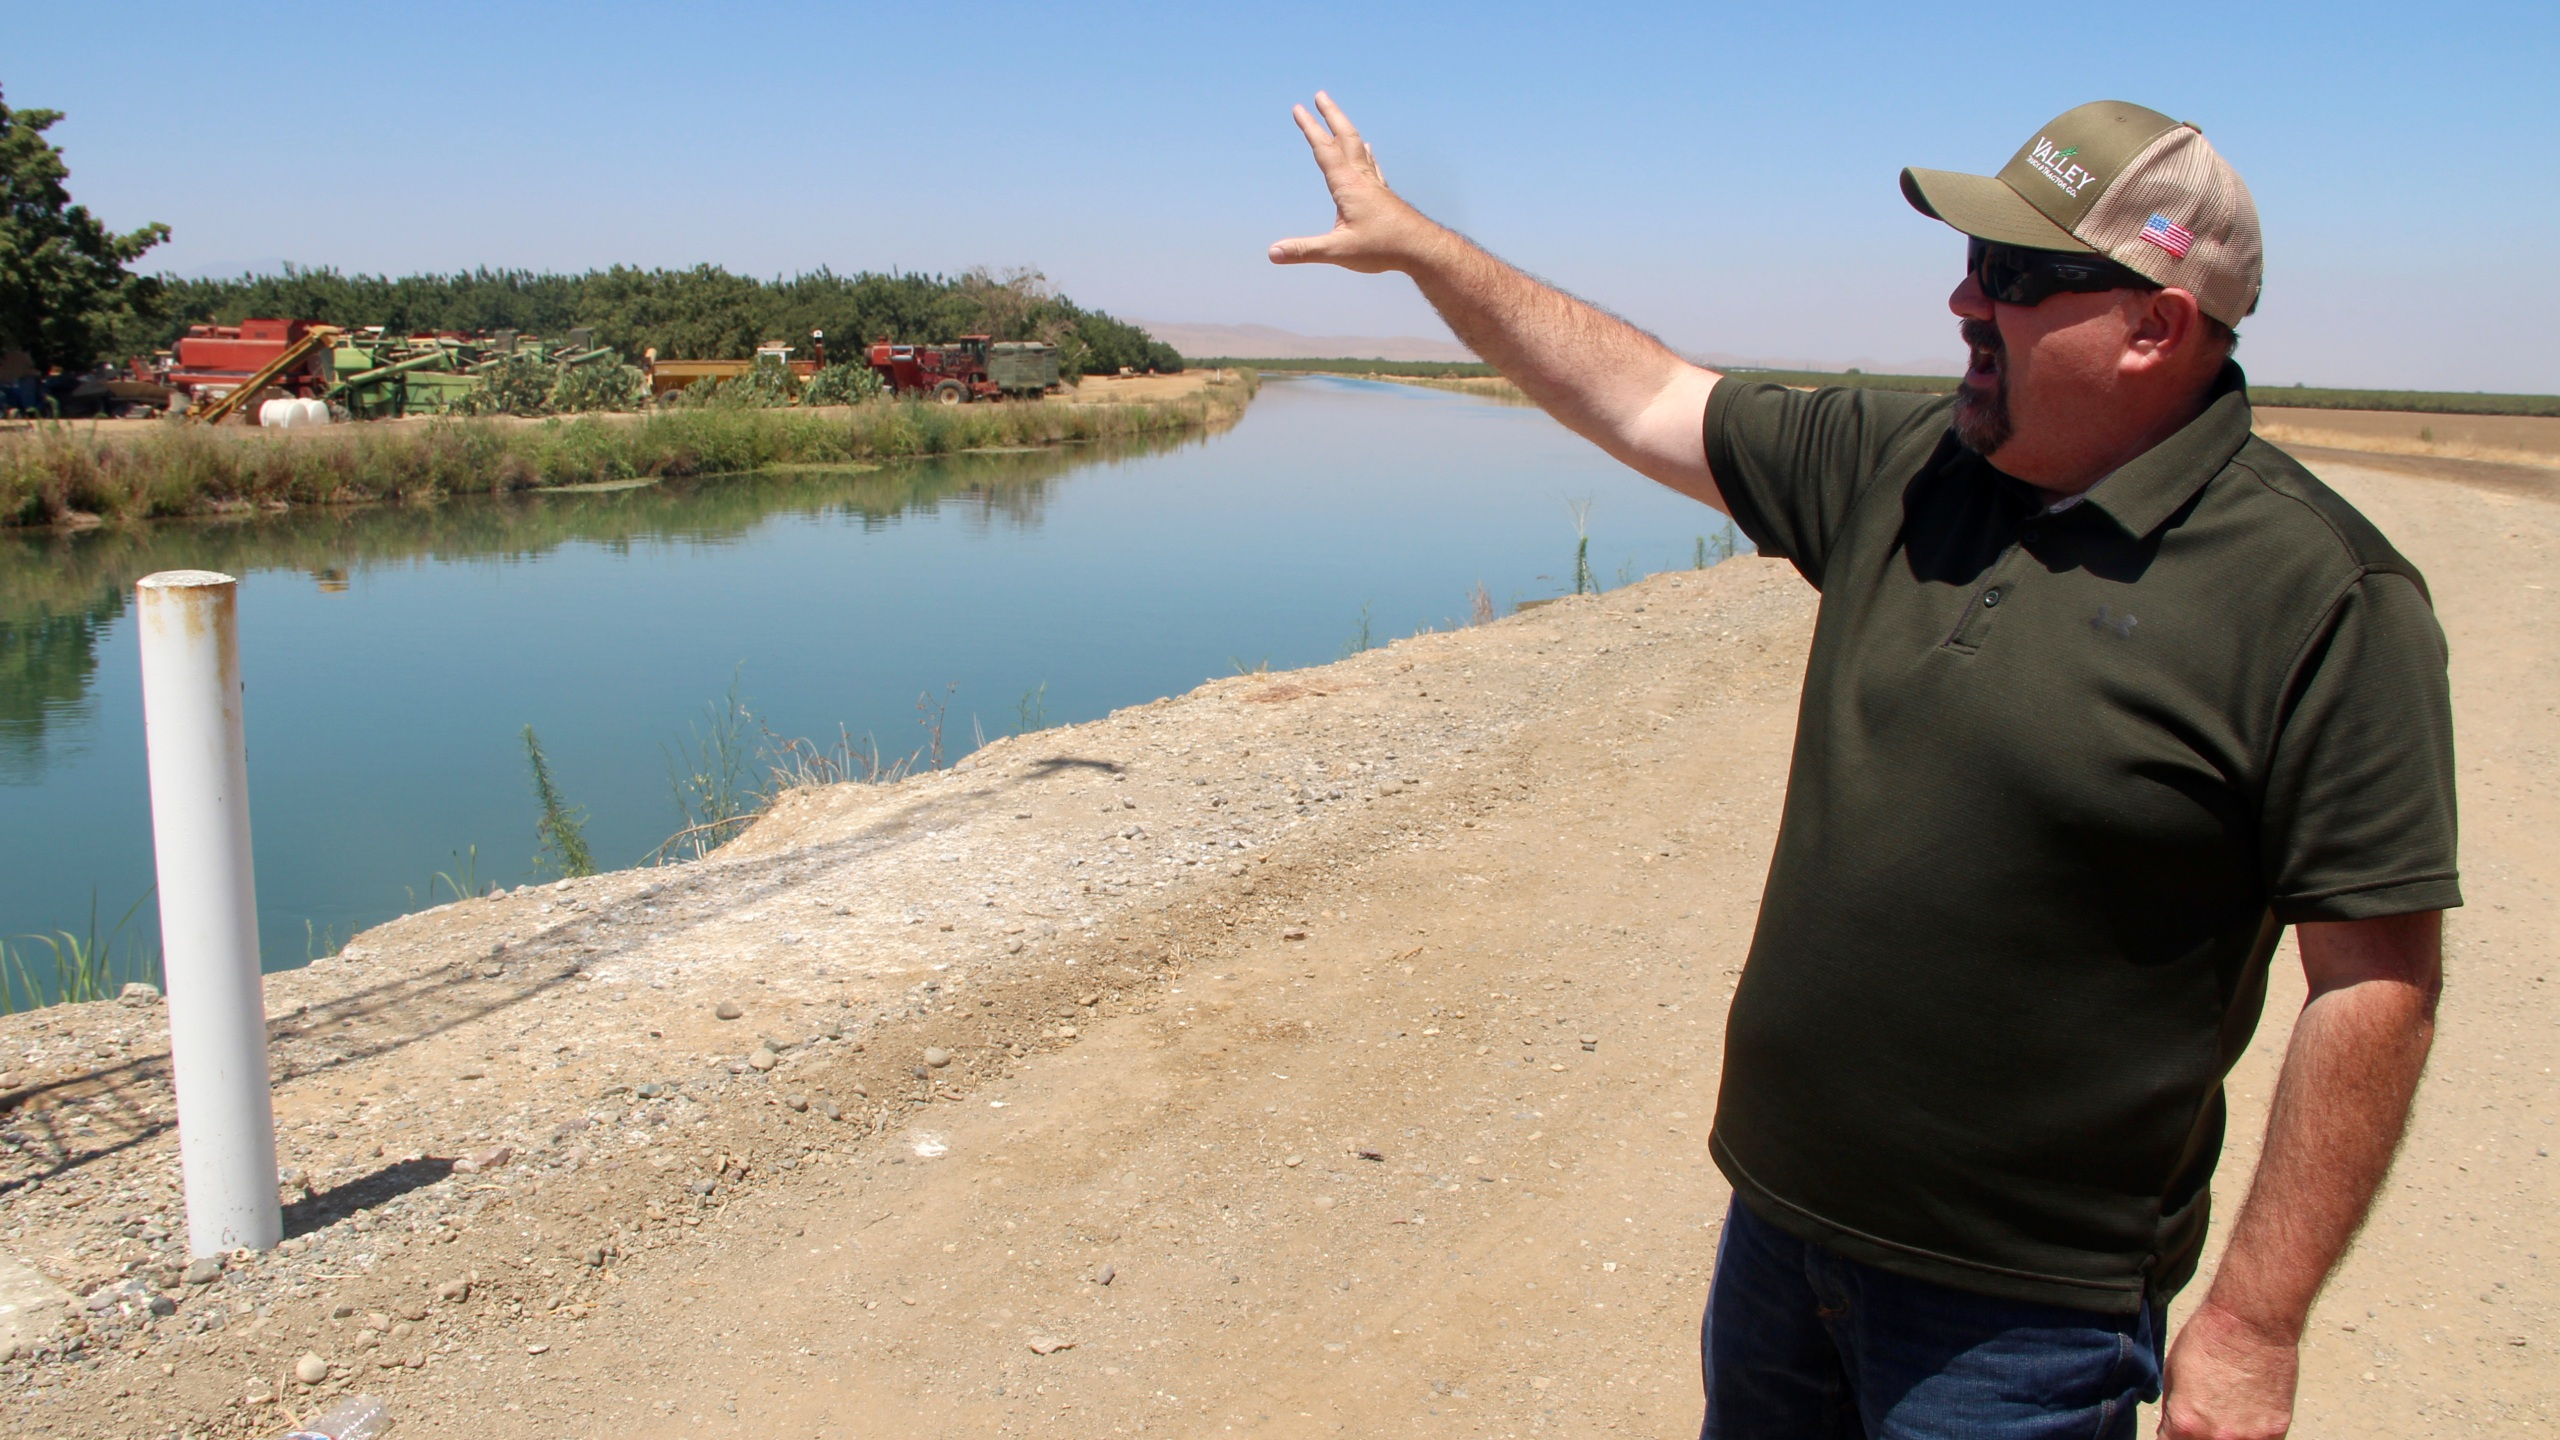 Kevin Spesert, public affairs and real estate manager for the Sites Project Authority, points out the main canal of the Glenn Colusa Irrigation District, on Friday, July 23, 2021, near Sites, Calif. The canal would be one of the primary sources of water for the planned Sites Reservoir, a project that would be large enough to supply enough water for 1.5 million households each for one year.(AP Photo/Adam Beam)